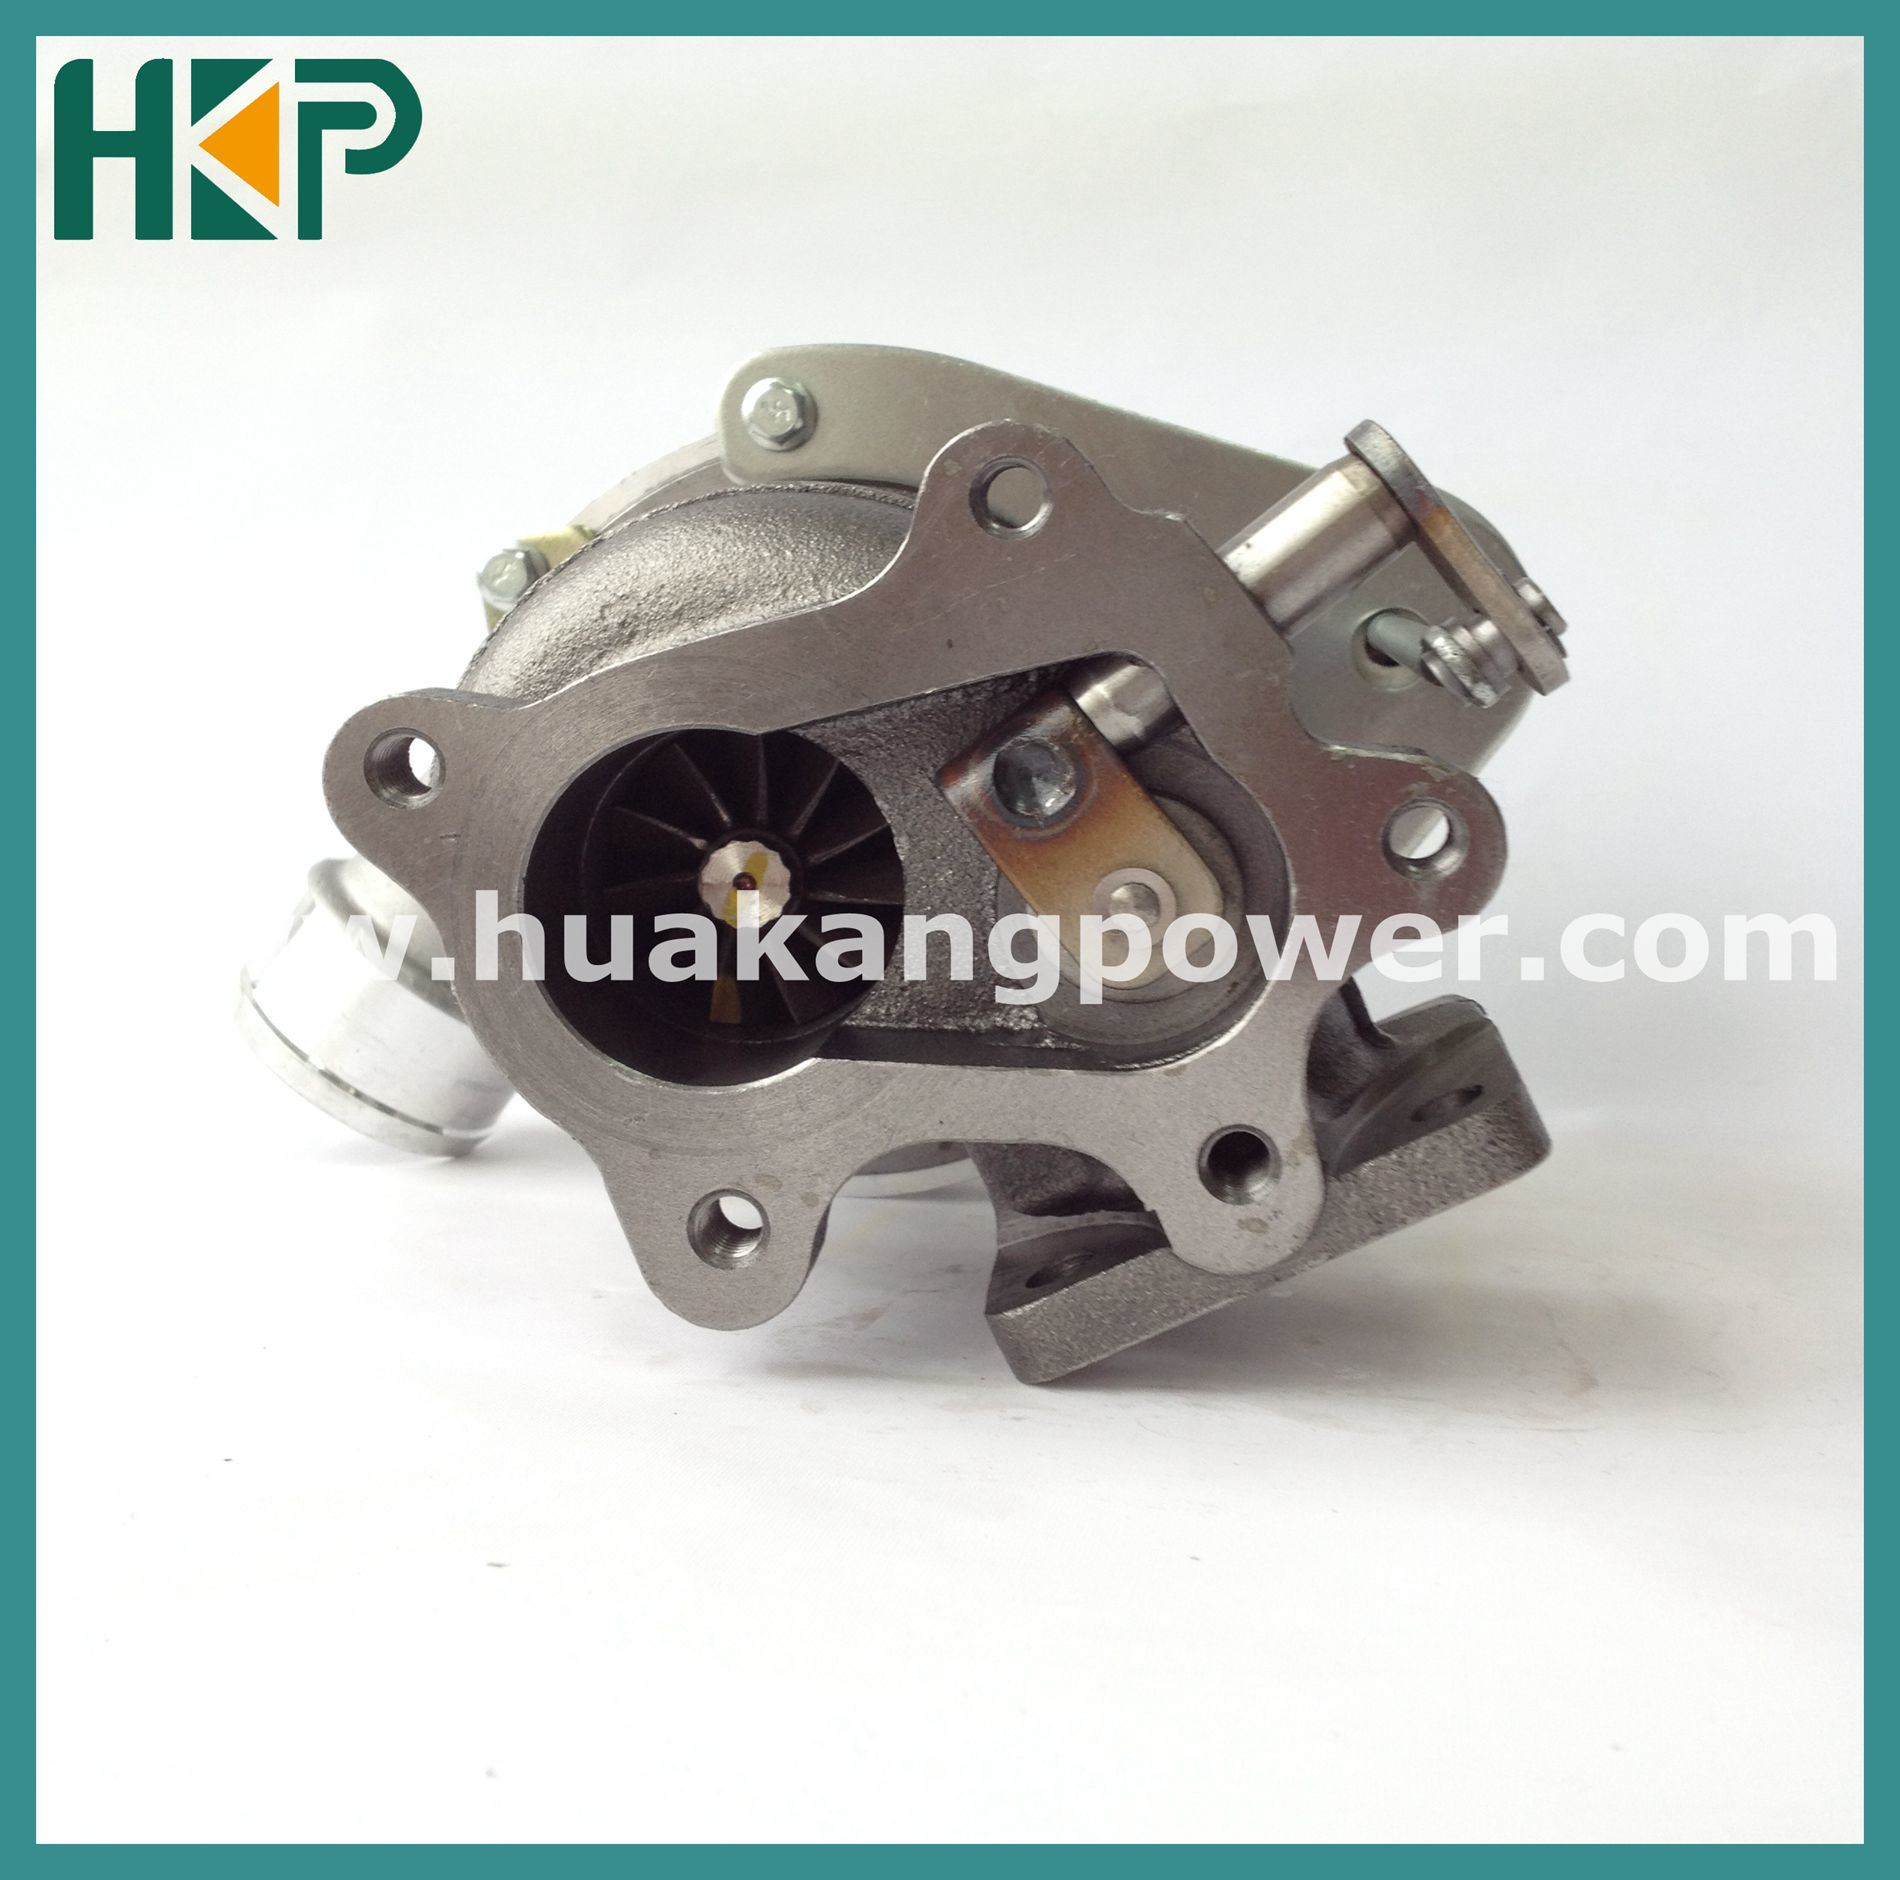 Turbo/Turbocharger for Rhf4 Vp47 Xnz1118600000